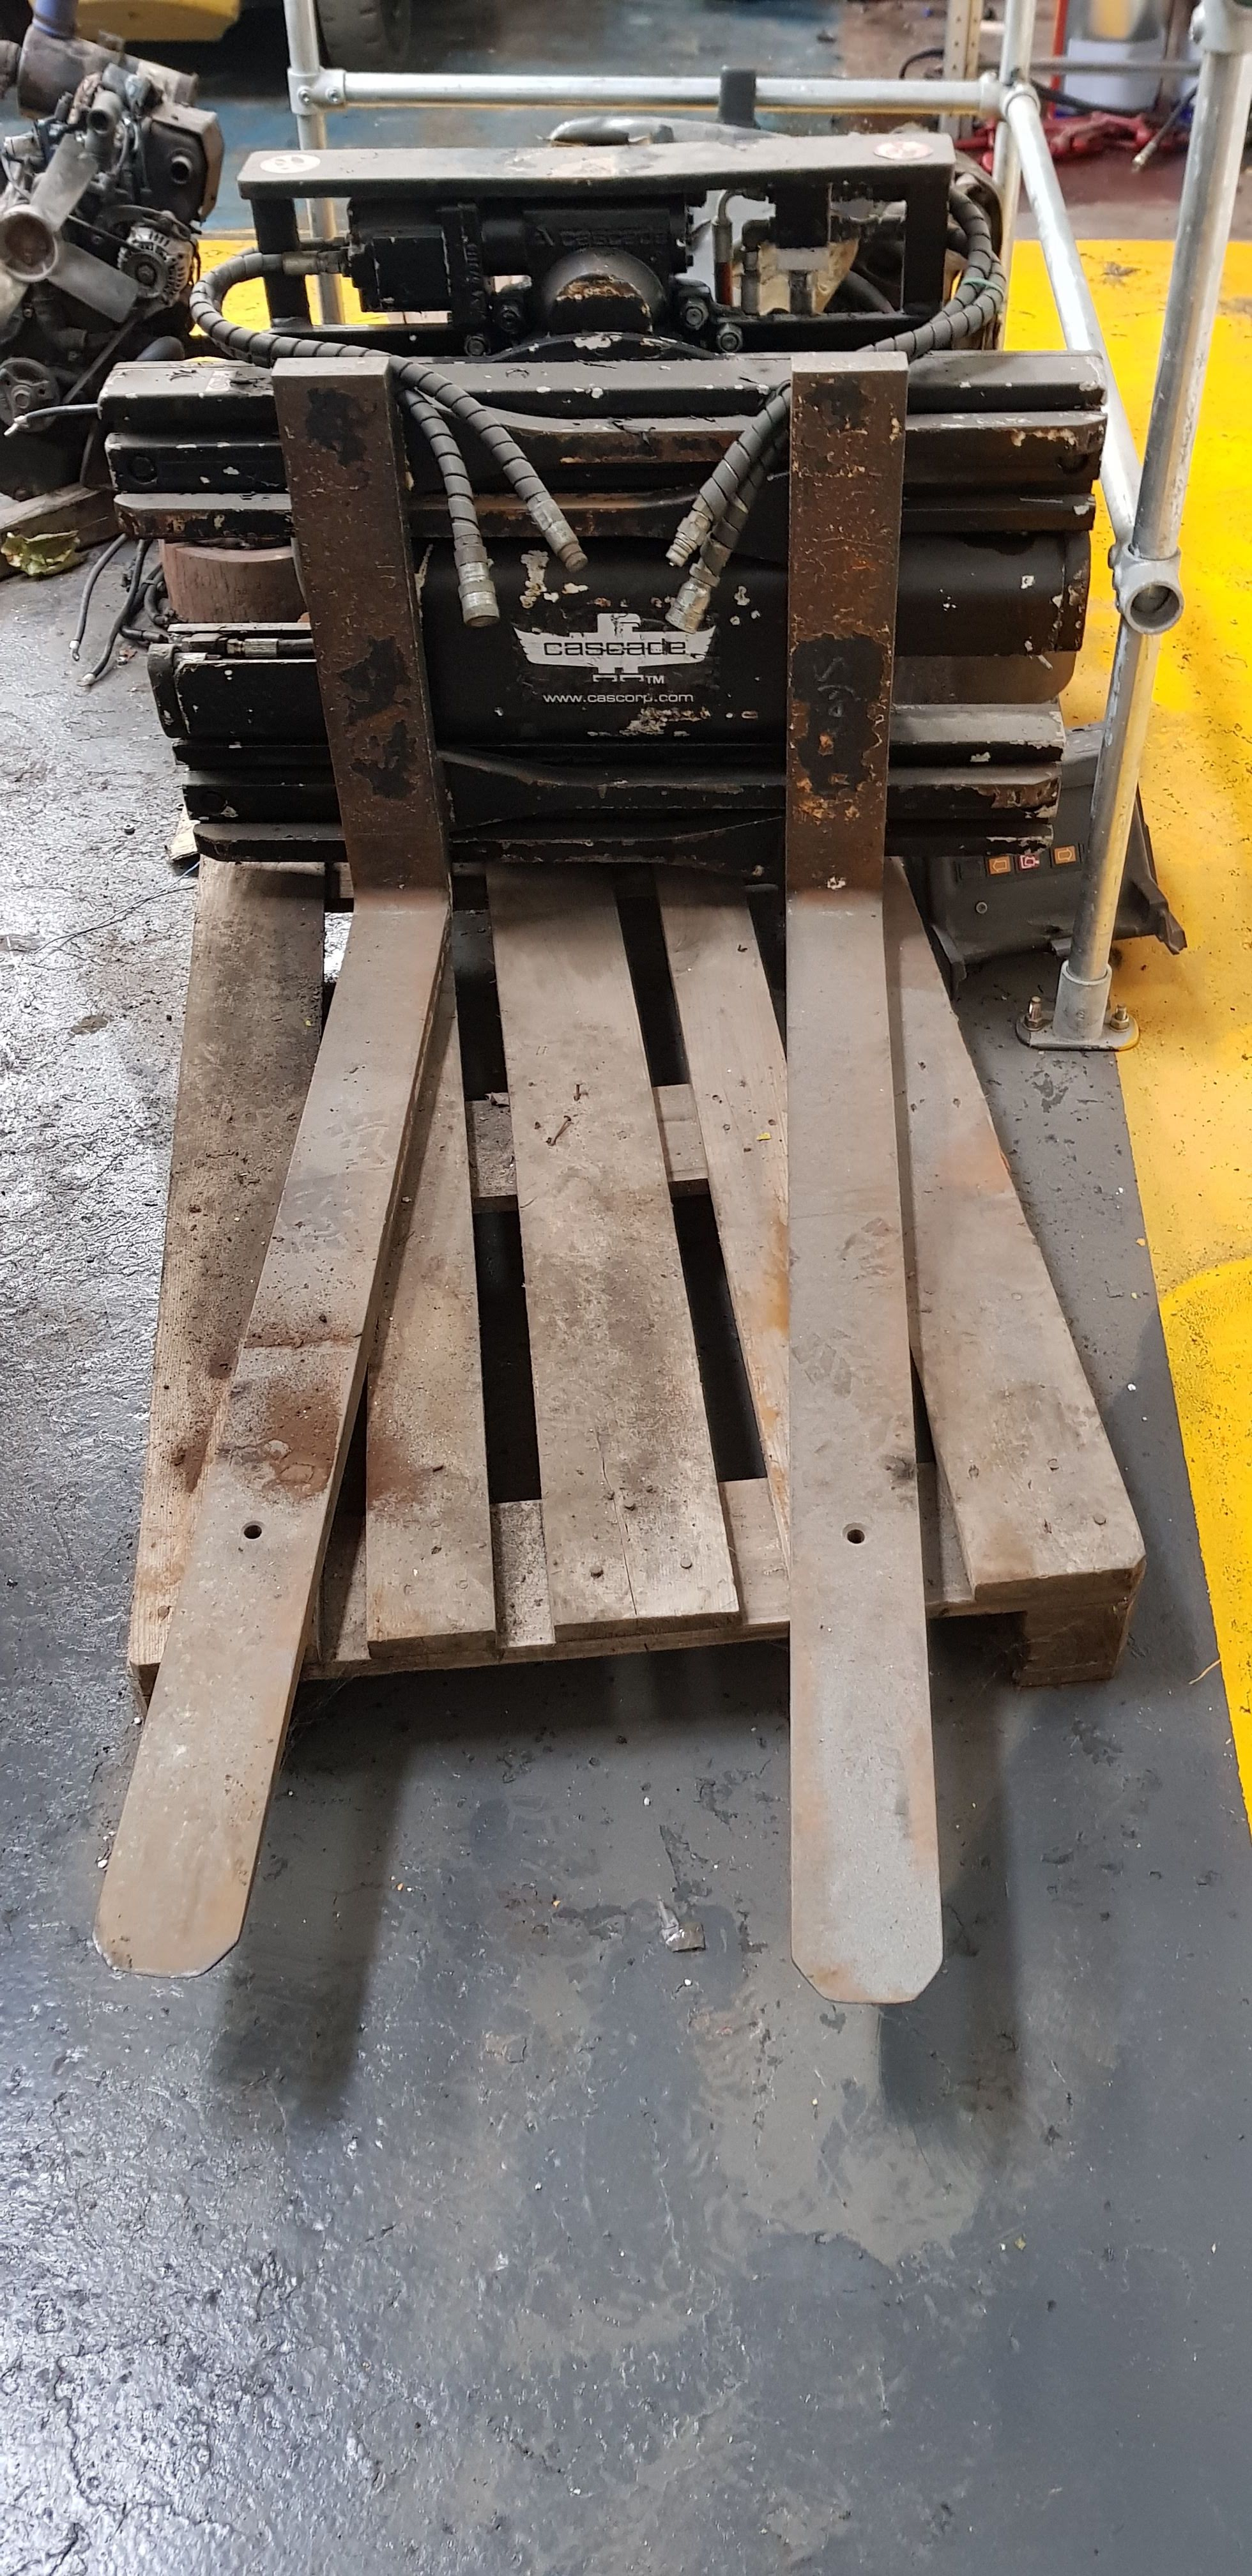 2 Ton Walk Behind Pallet Stacker Electric Forklift Price 1: Lift Truck Services